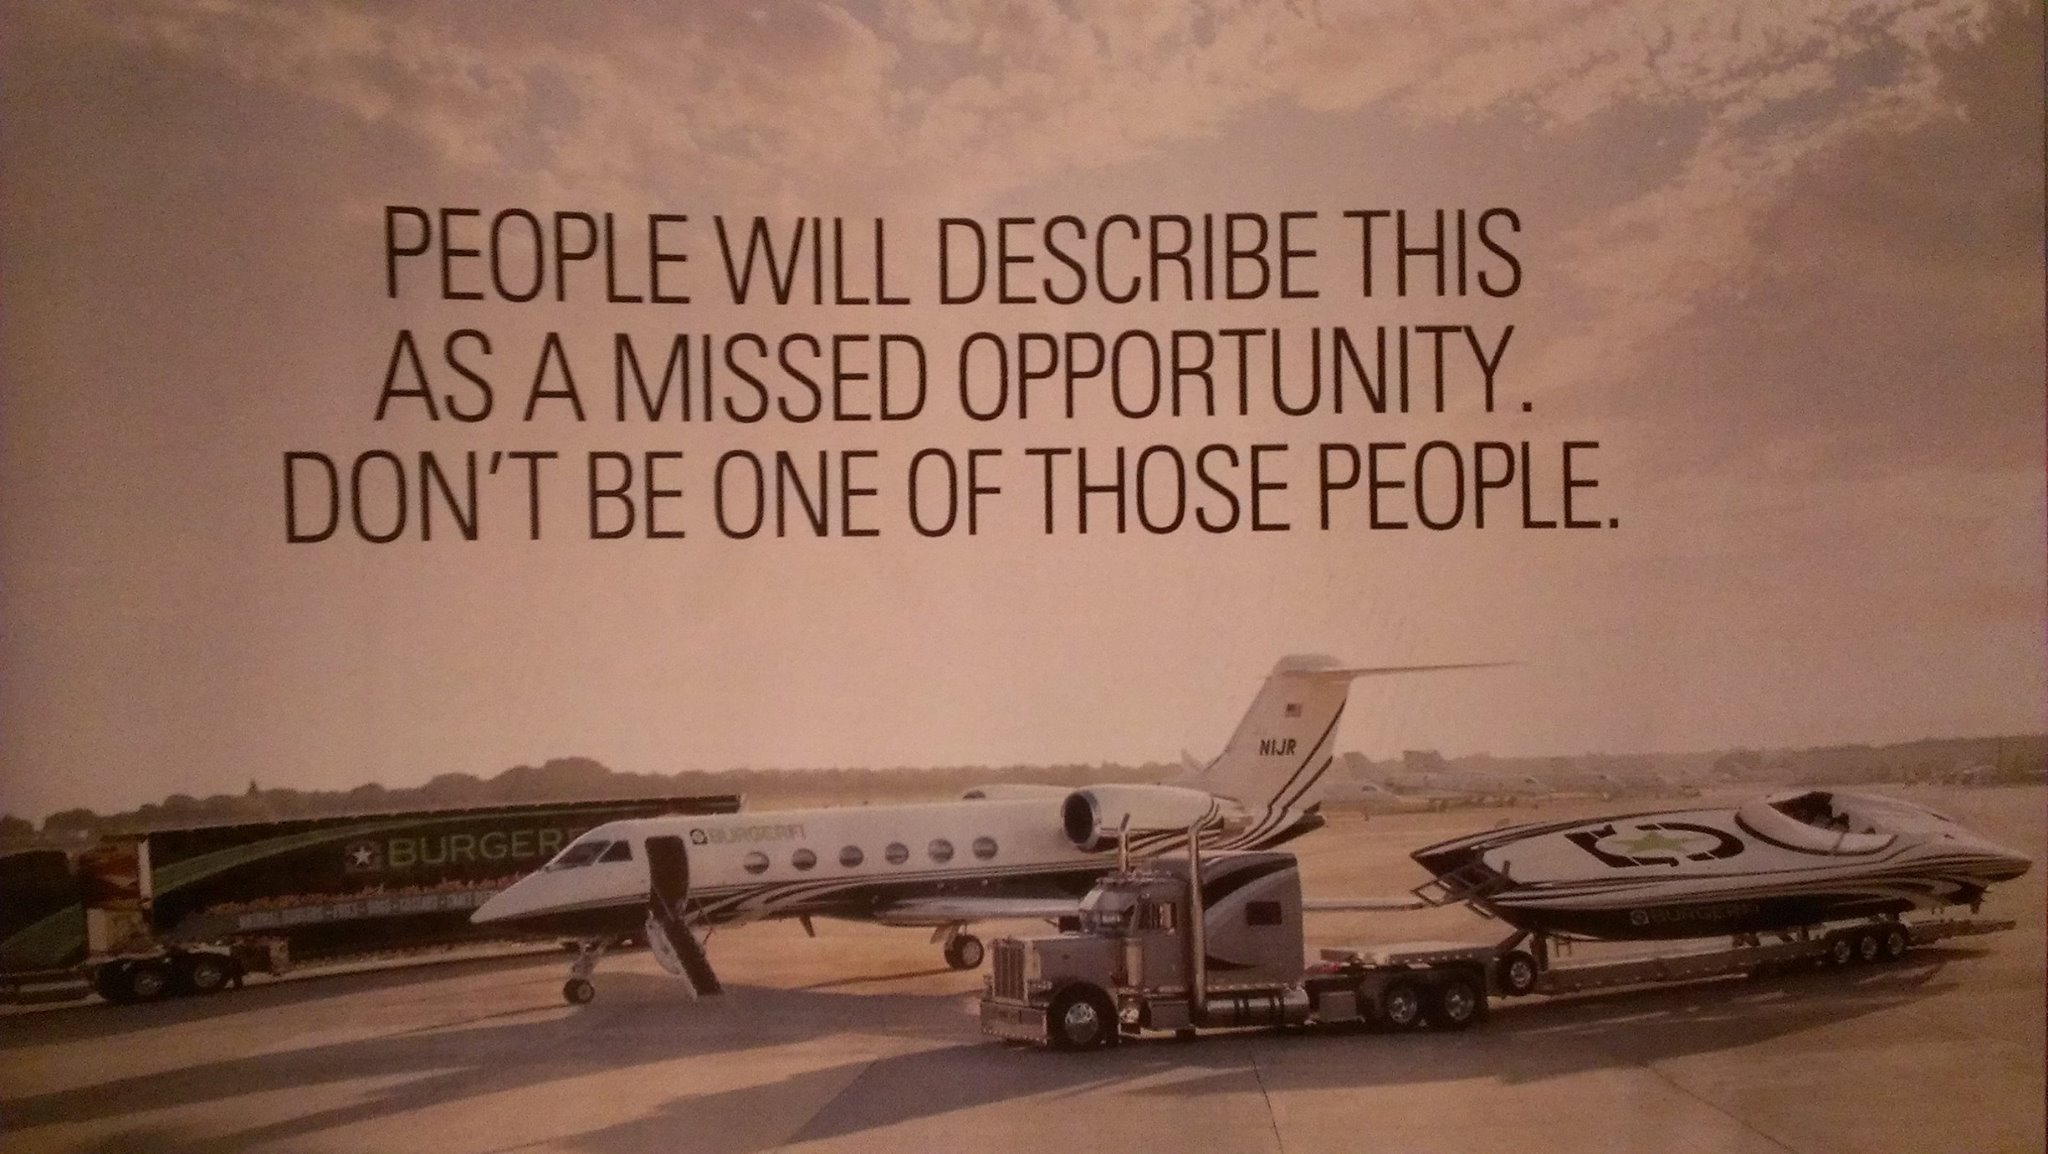 Don't Be One of Those People Missed Opportunity Picture Quote